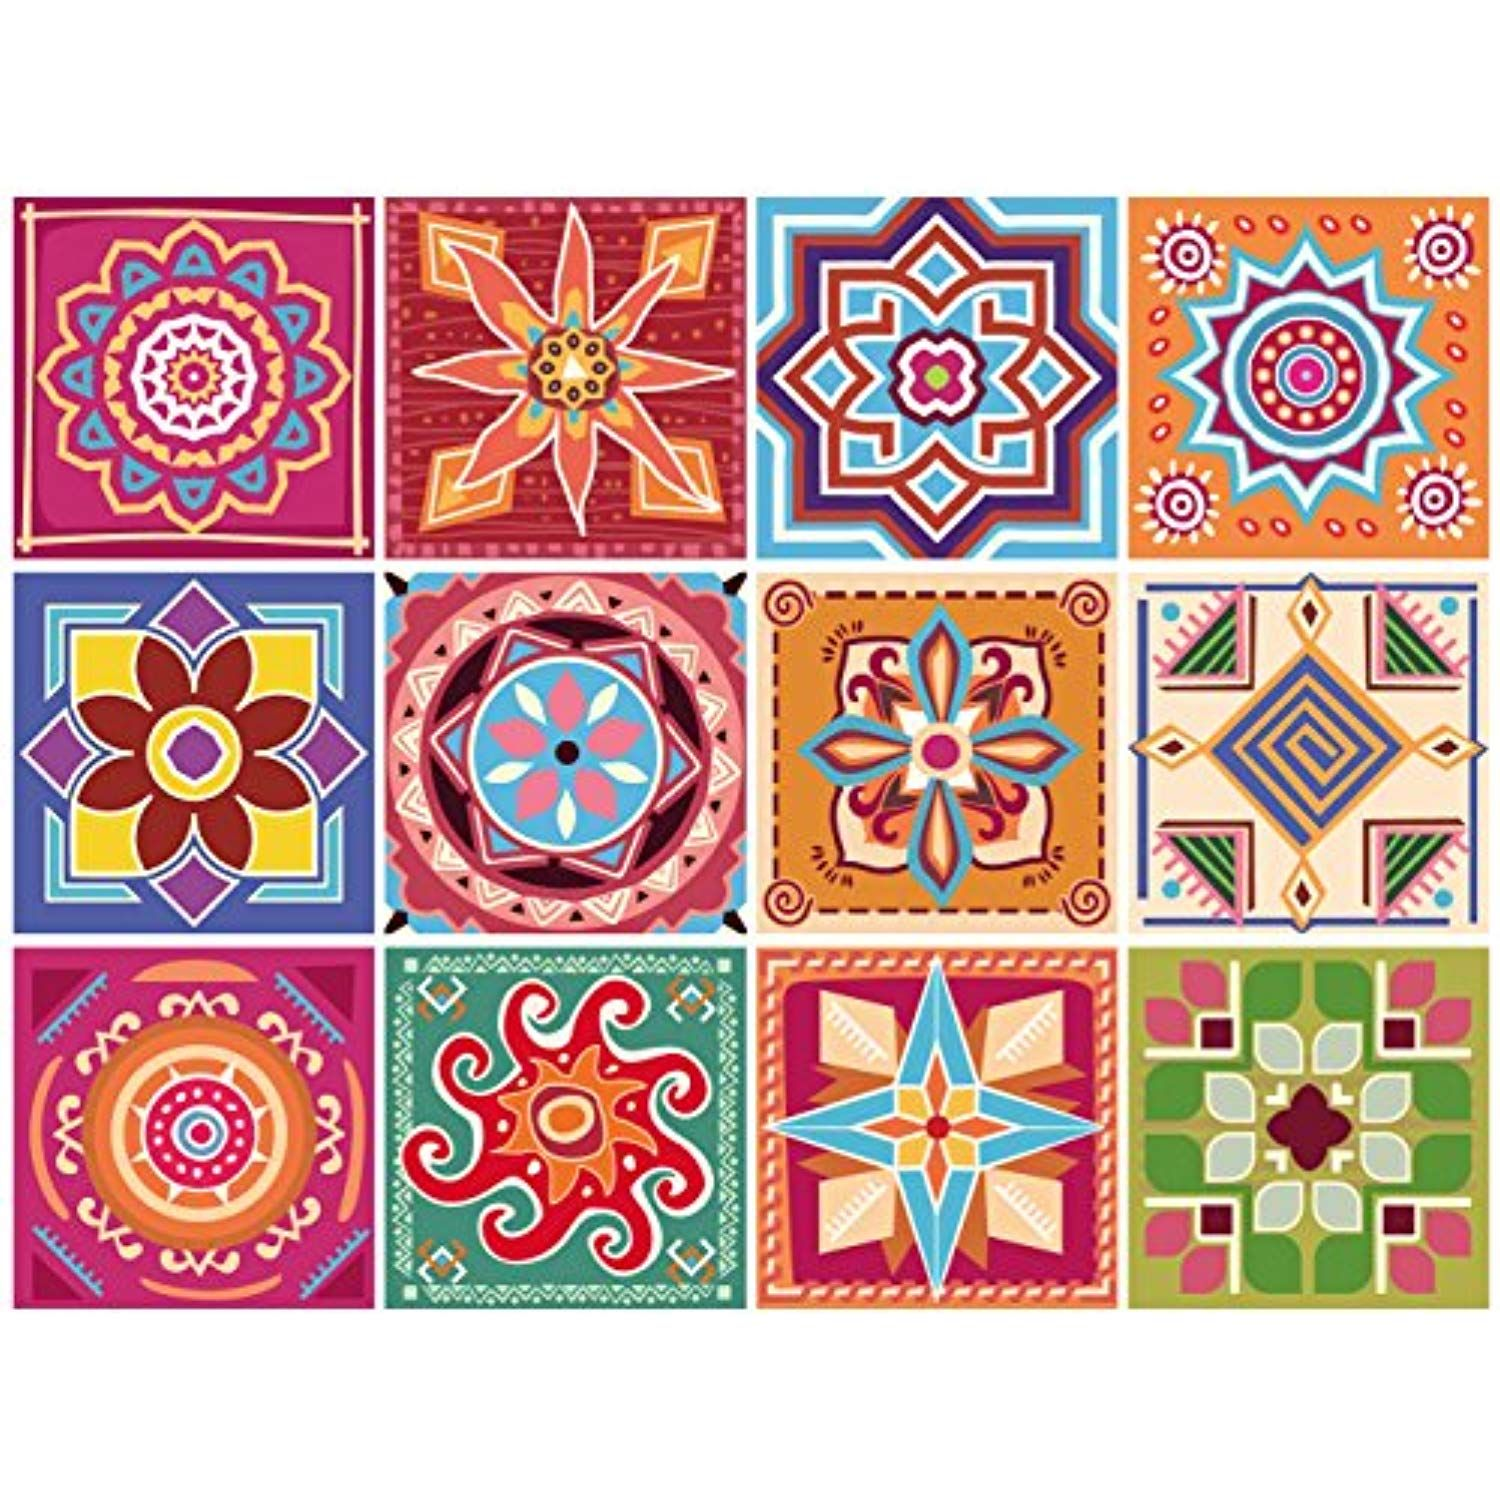 Gss Designs 12 Pc Pack 6x6 Inch 15x15cm Backsplash Tile Stickers Circuit Board Sticker Label Wall Decals Peel And Stick Stairs Home Furniture Decor